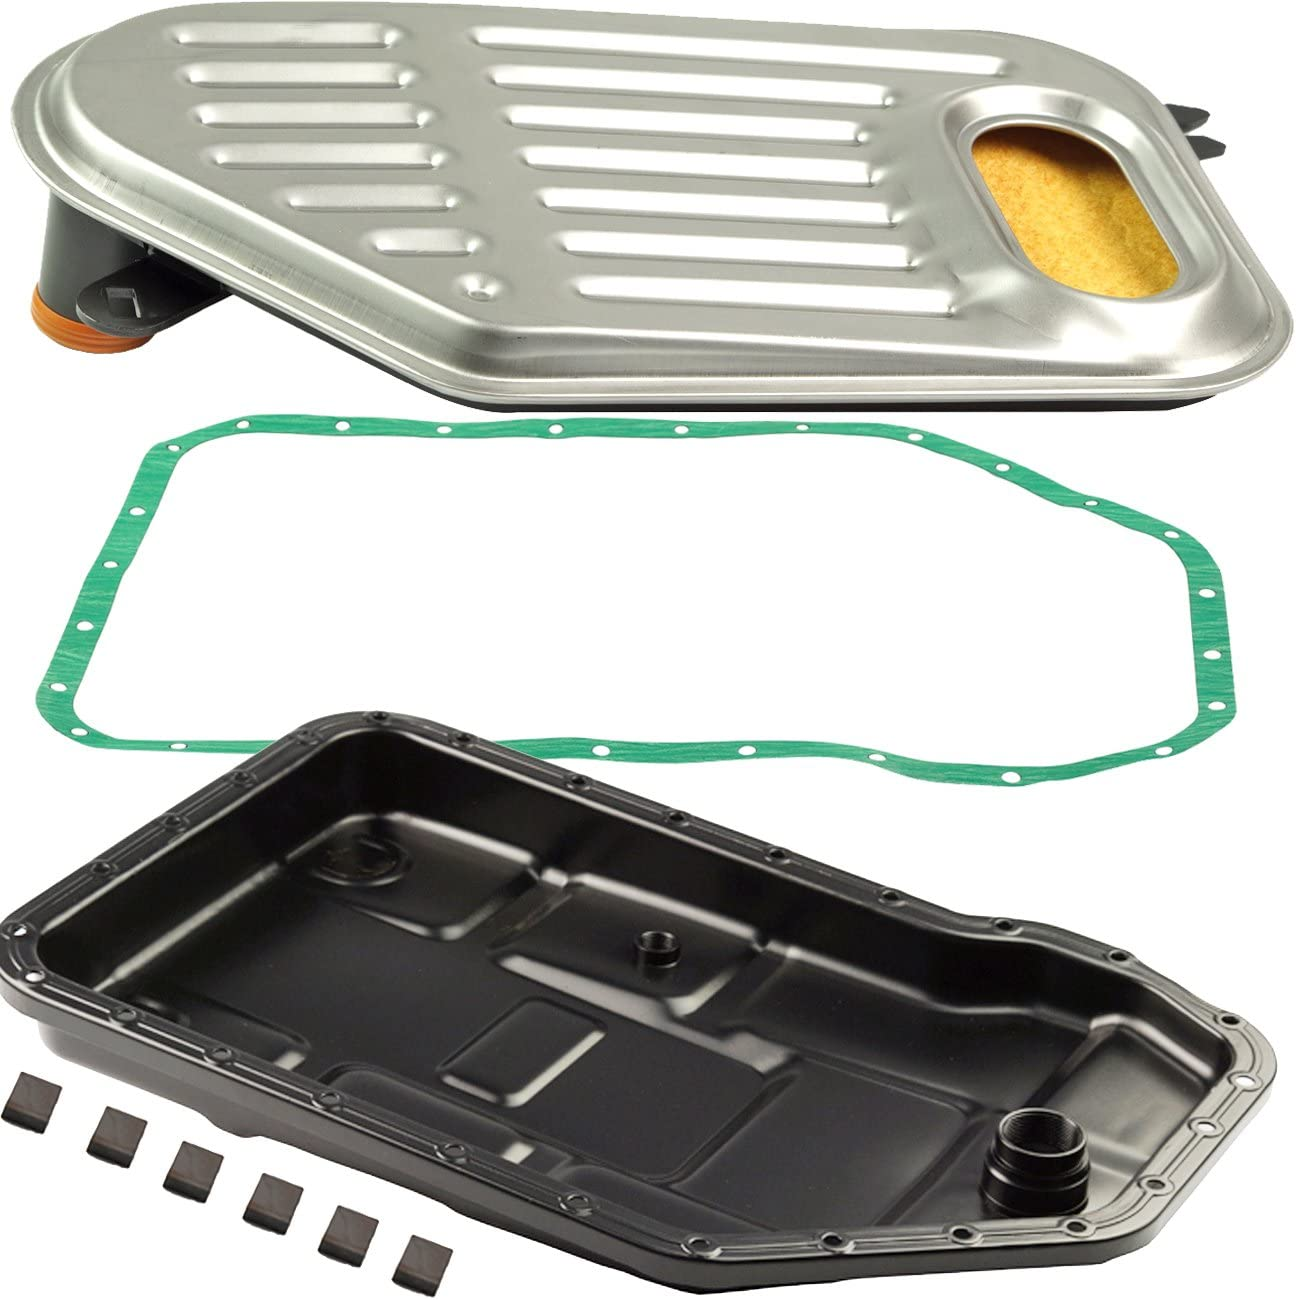 Bapmic Auto Transmission Oil Pan + Filter + Gasket Kit for Volkswagen Passat Audi A4 A6 A8